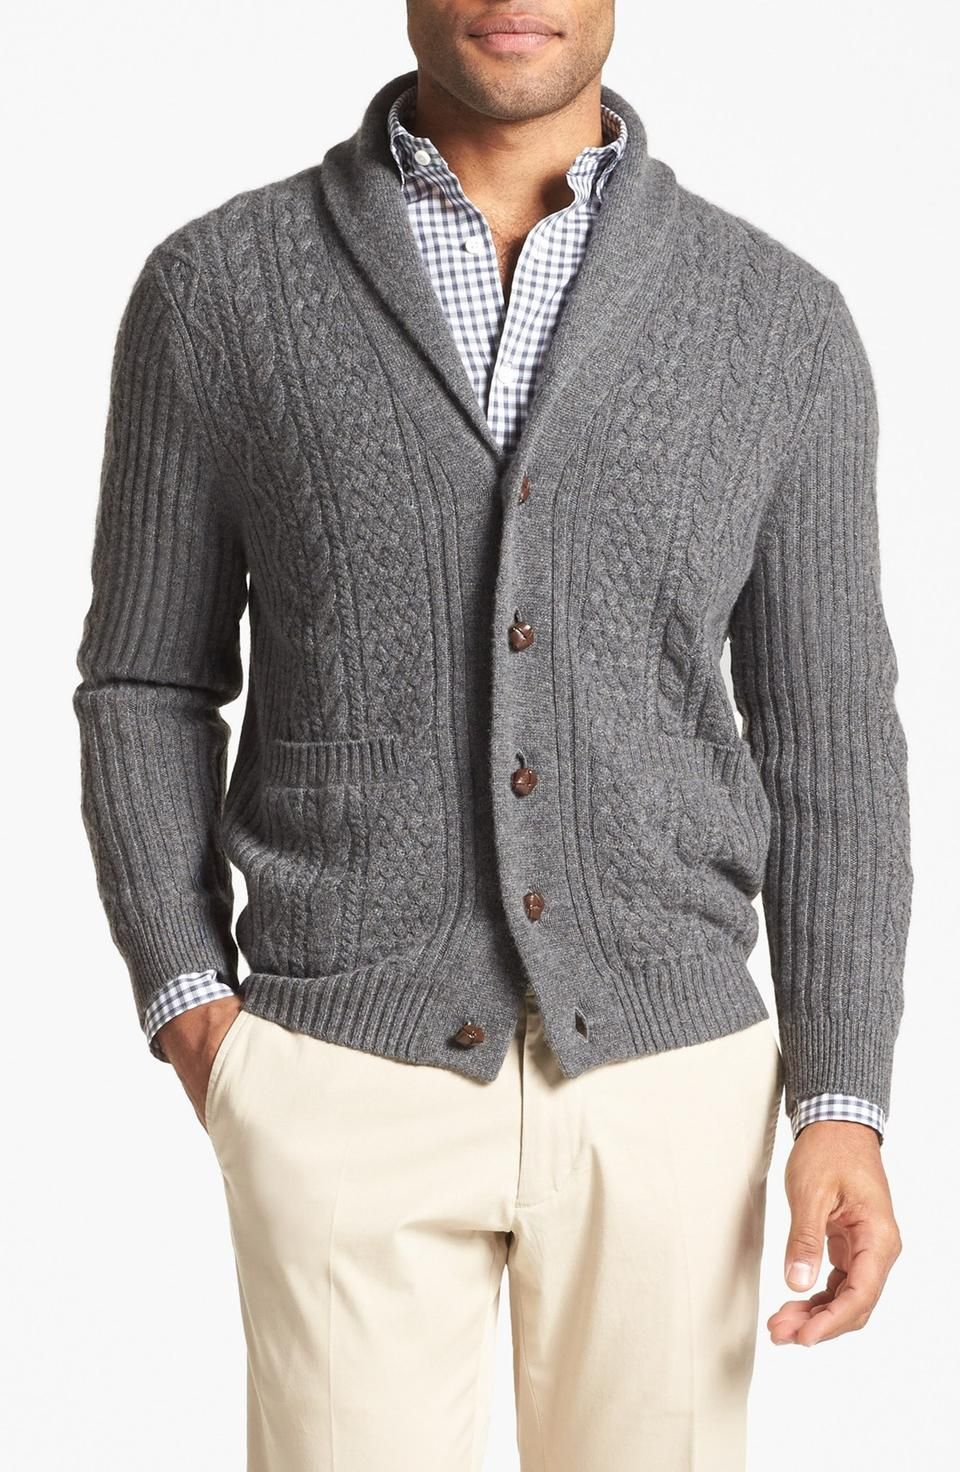 Shawl Cardigan | Men's and Women's Shawl Collar Cardigans ...